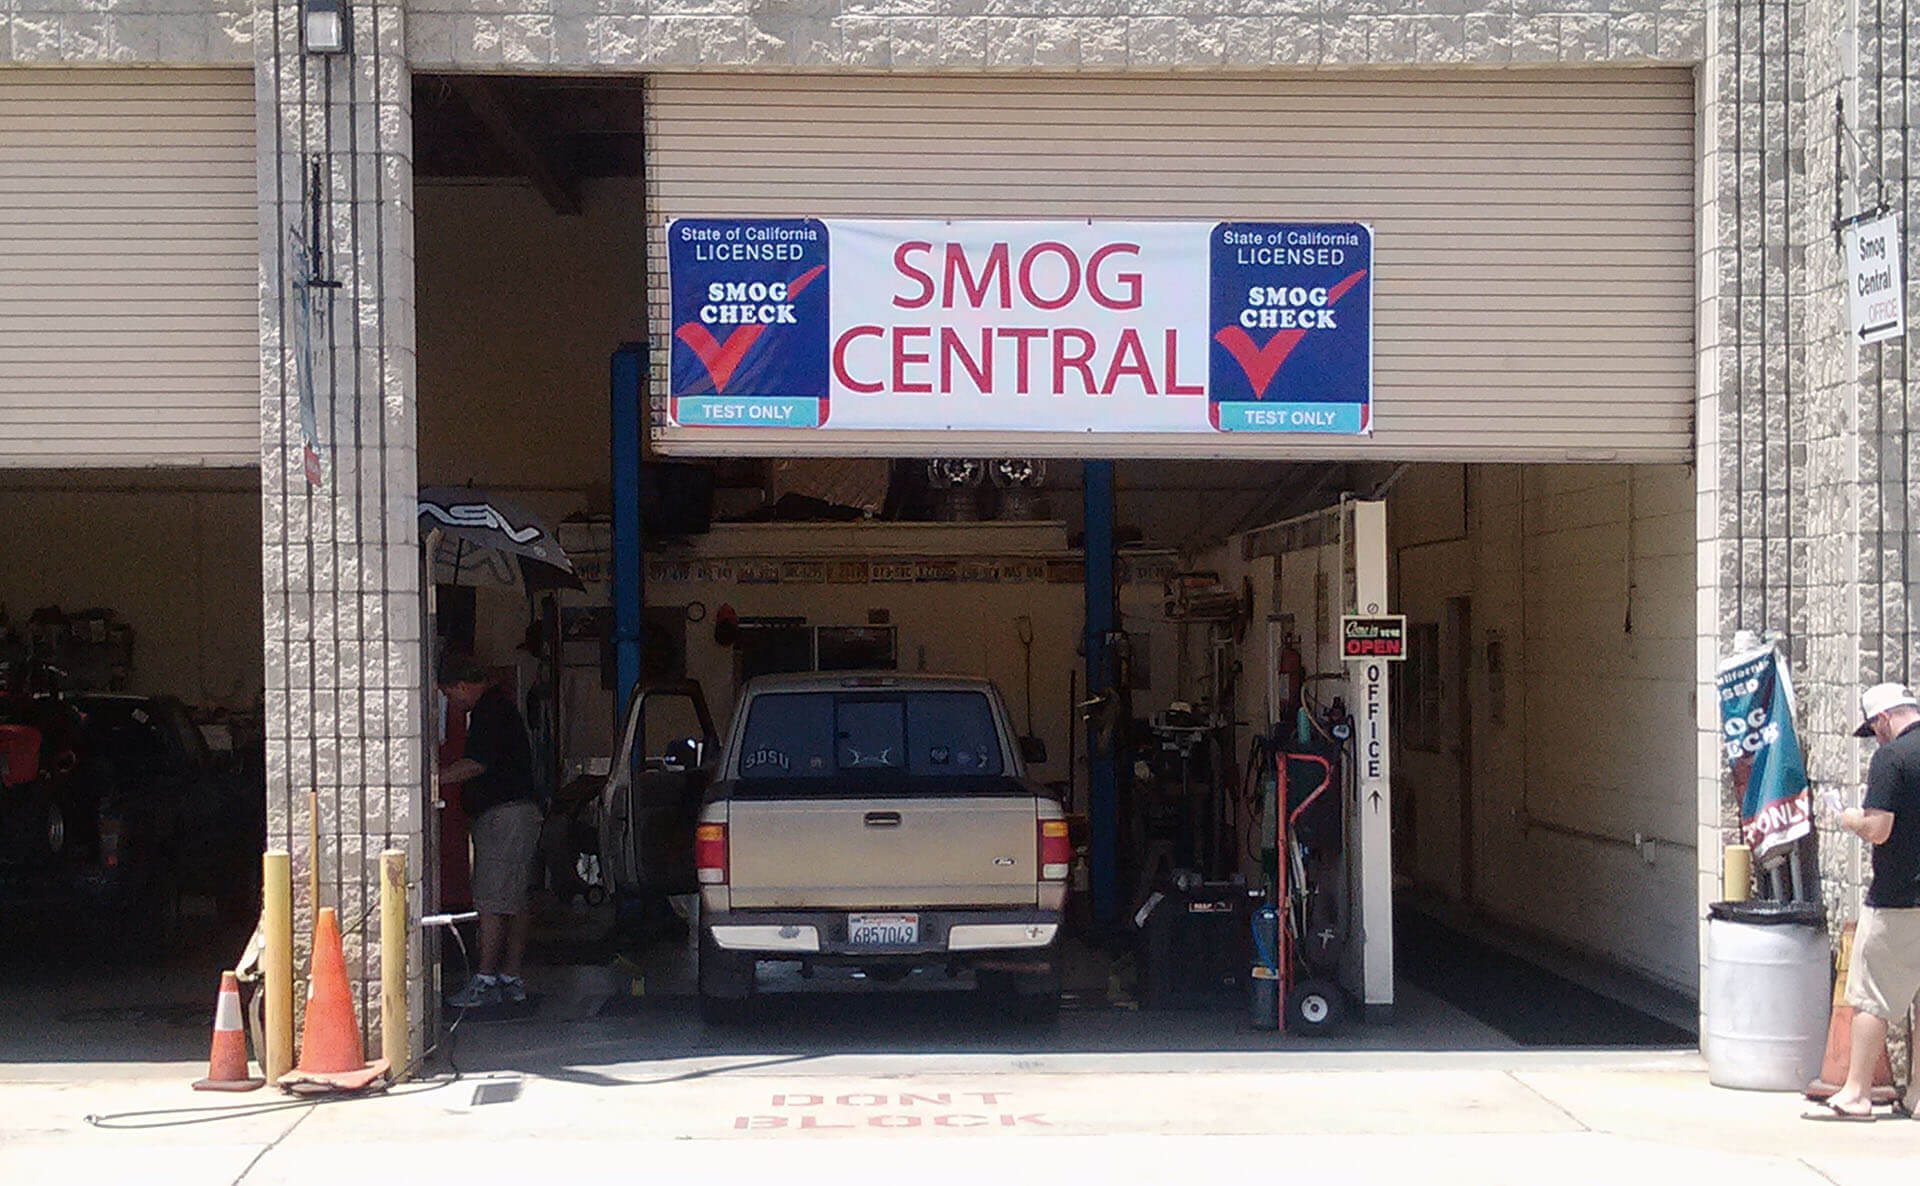 Smog Central Station Complete Auto Repair And Smog Test San Marcos